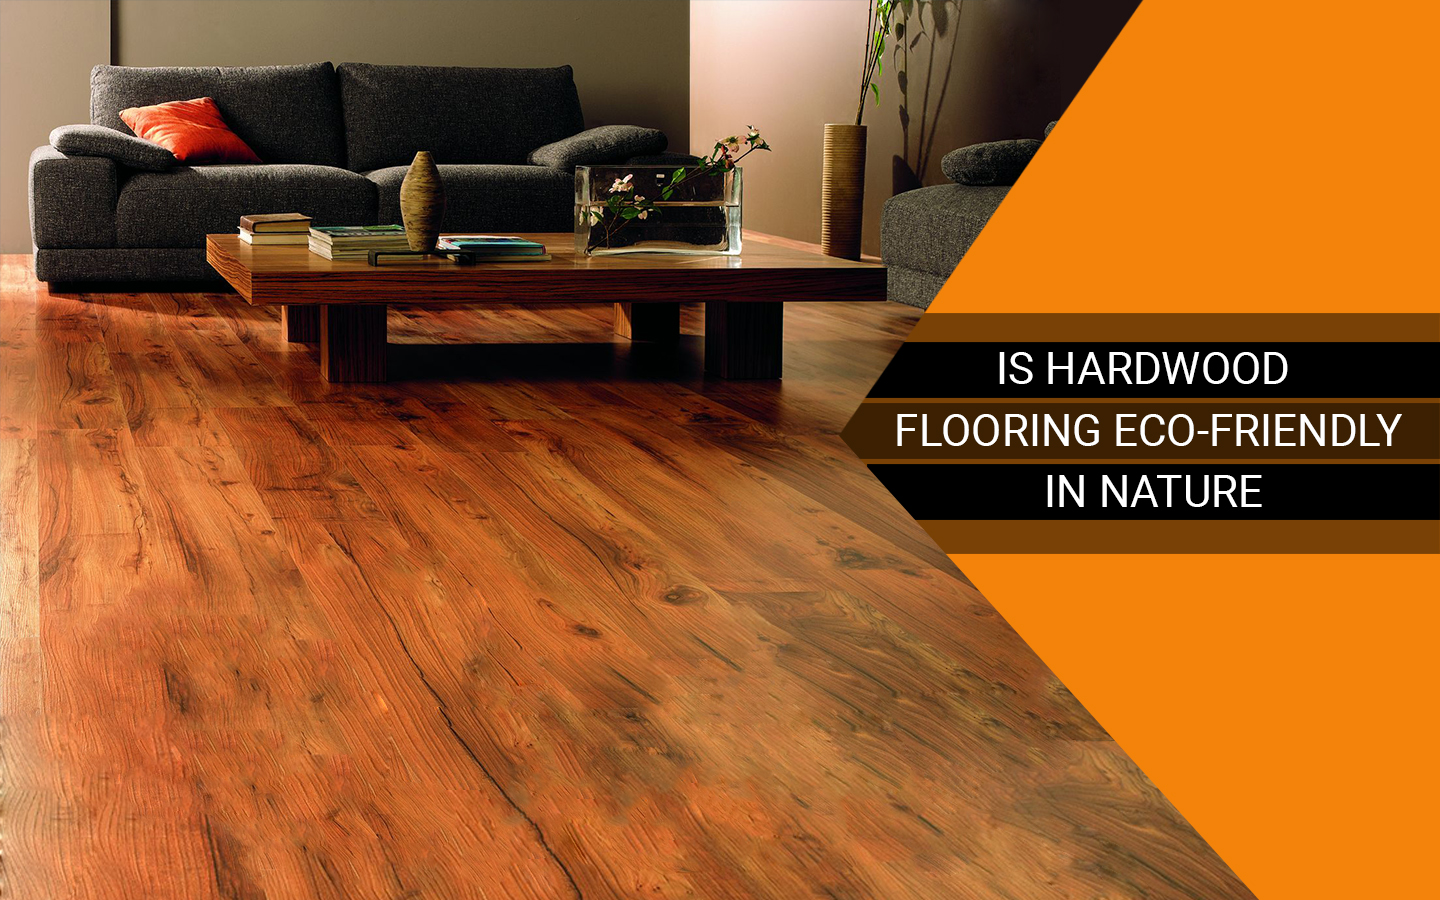 Is Hardwood Flooring Eco-friendly in Nature